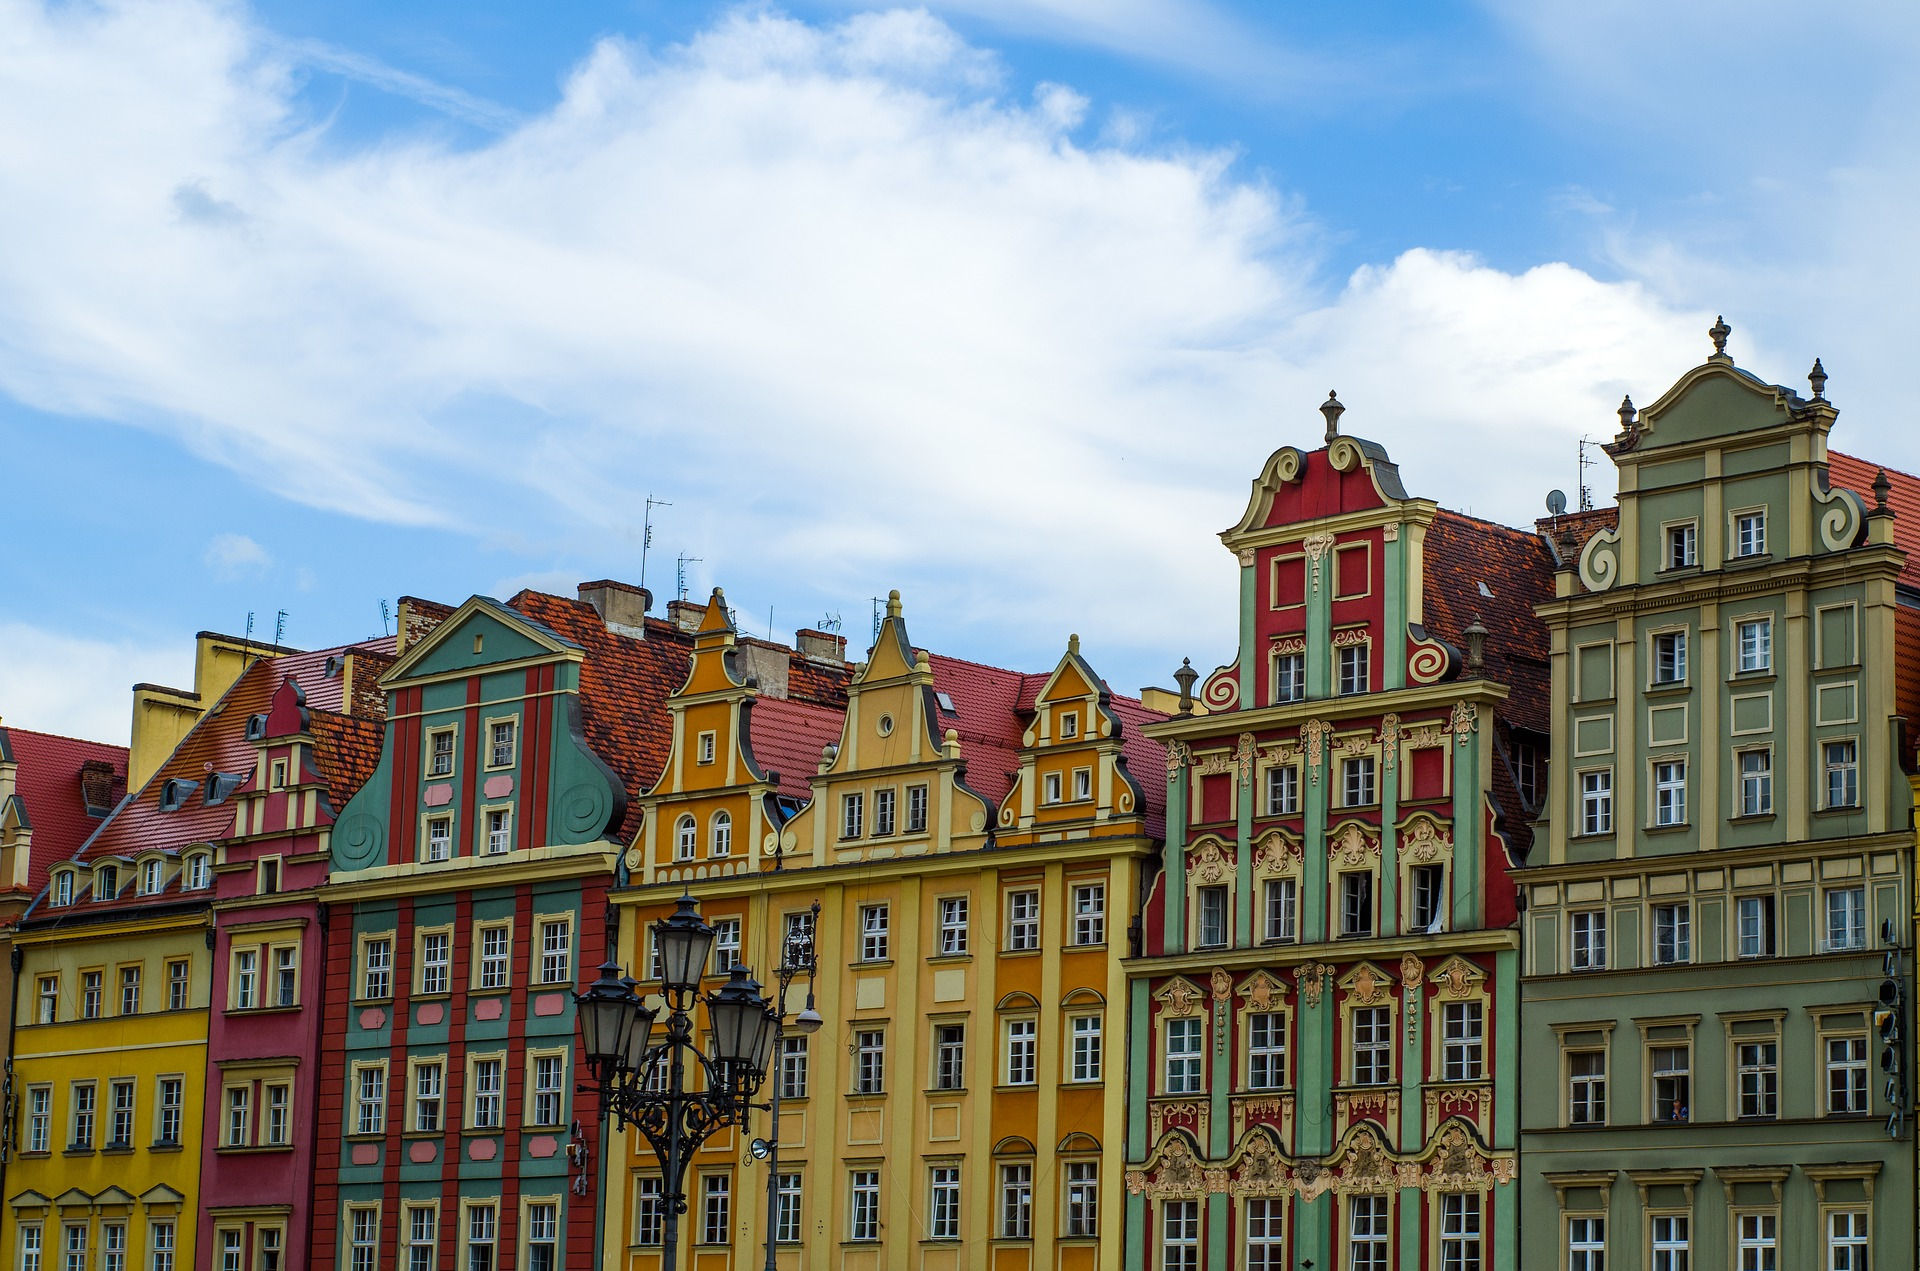 market architecture from 3 days in Wroclaw